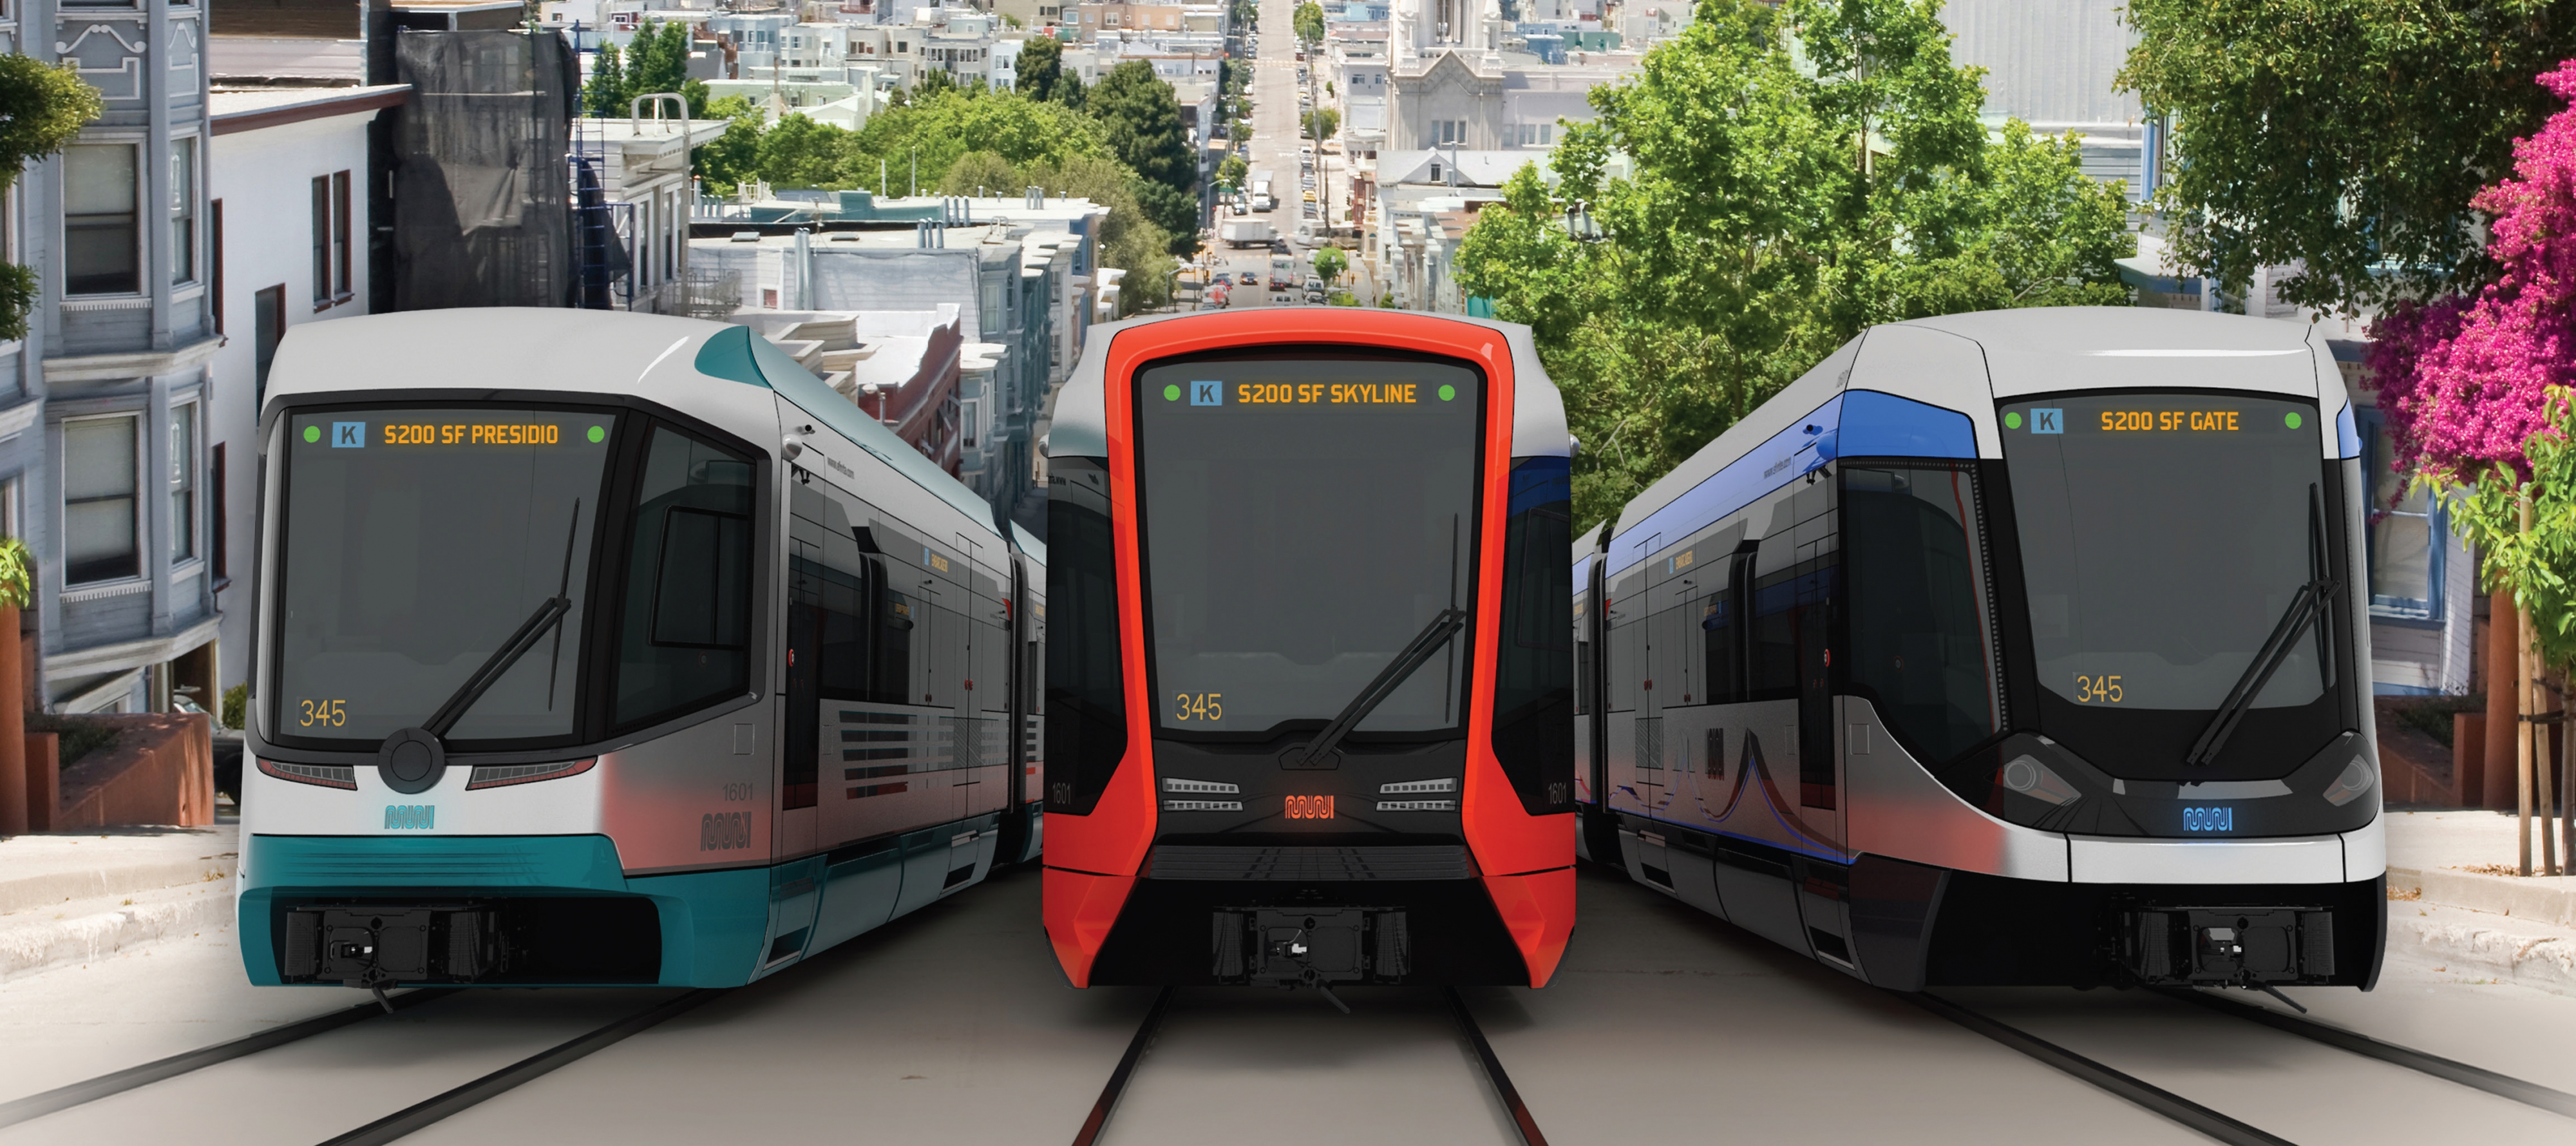 Renderings of three potential future Muni train designs